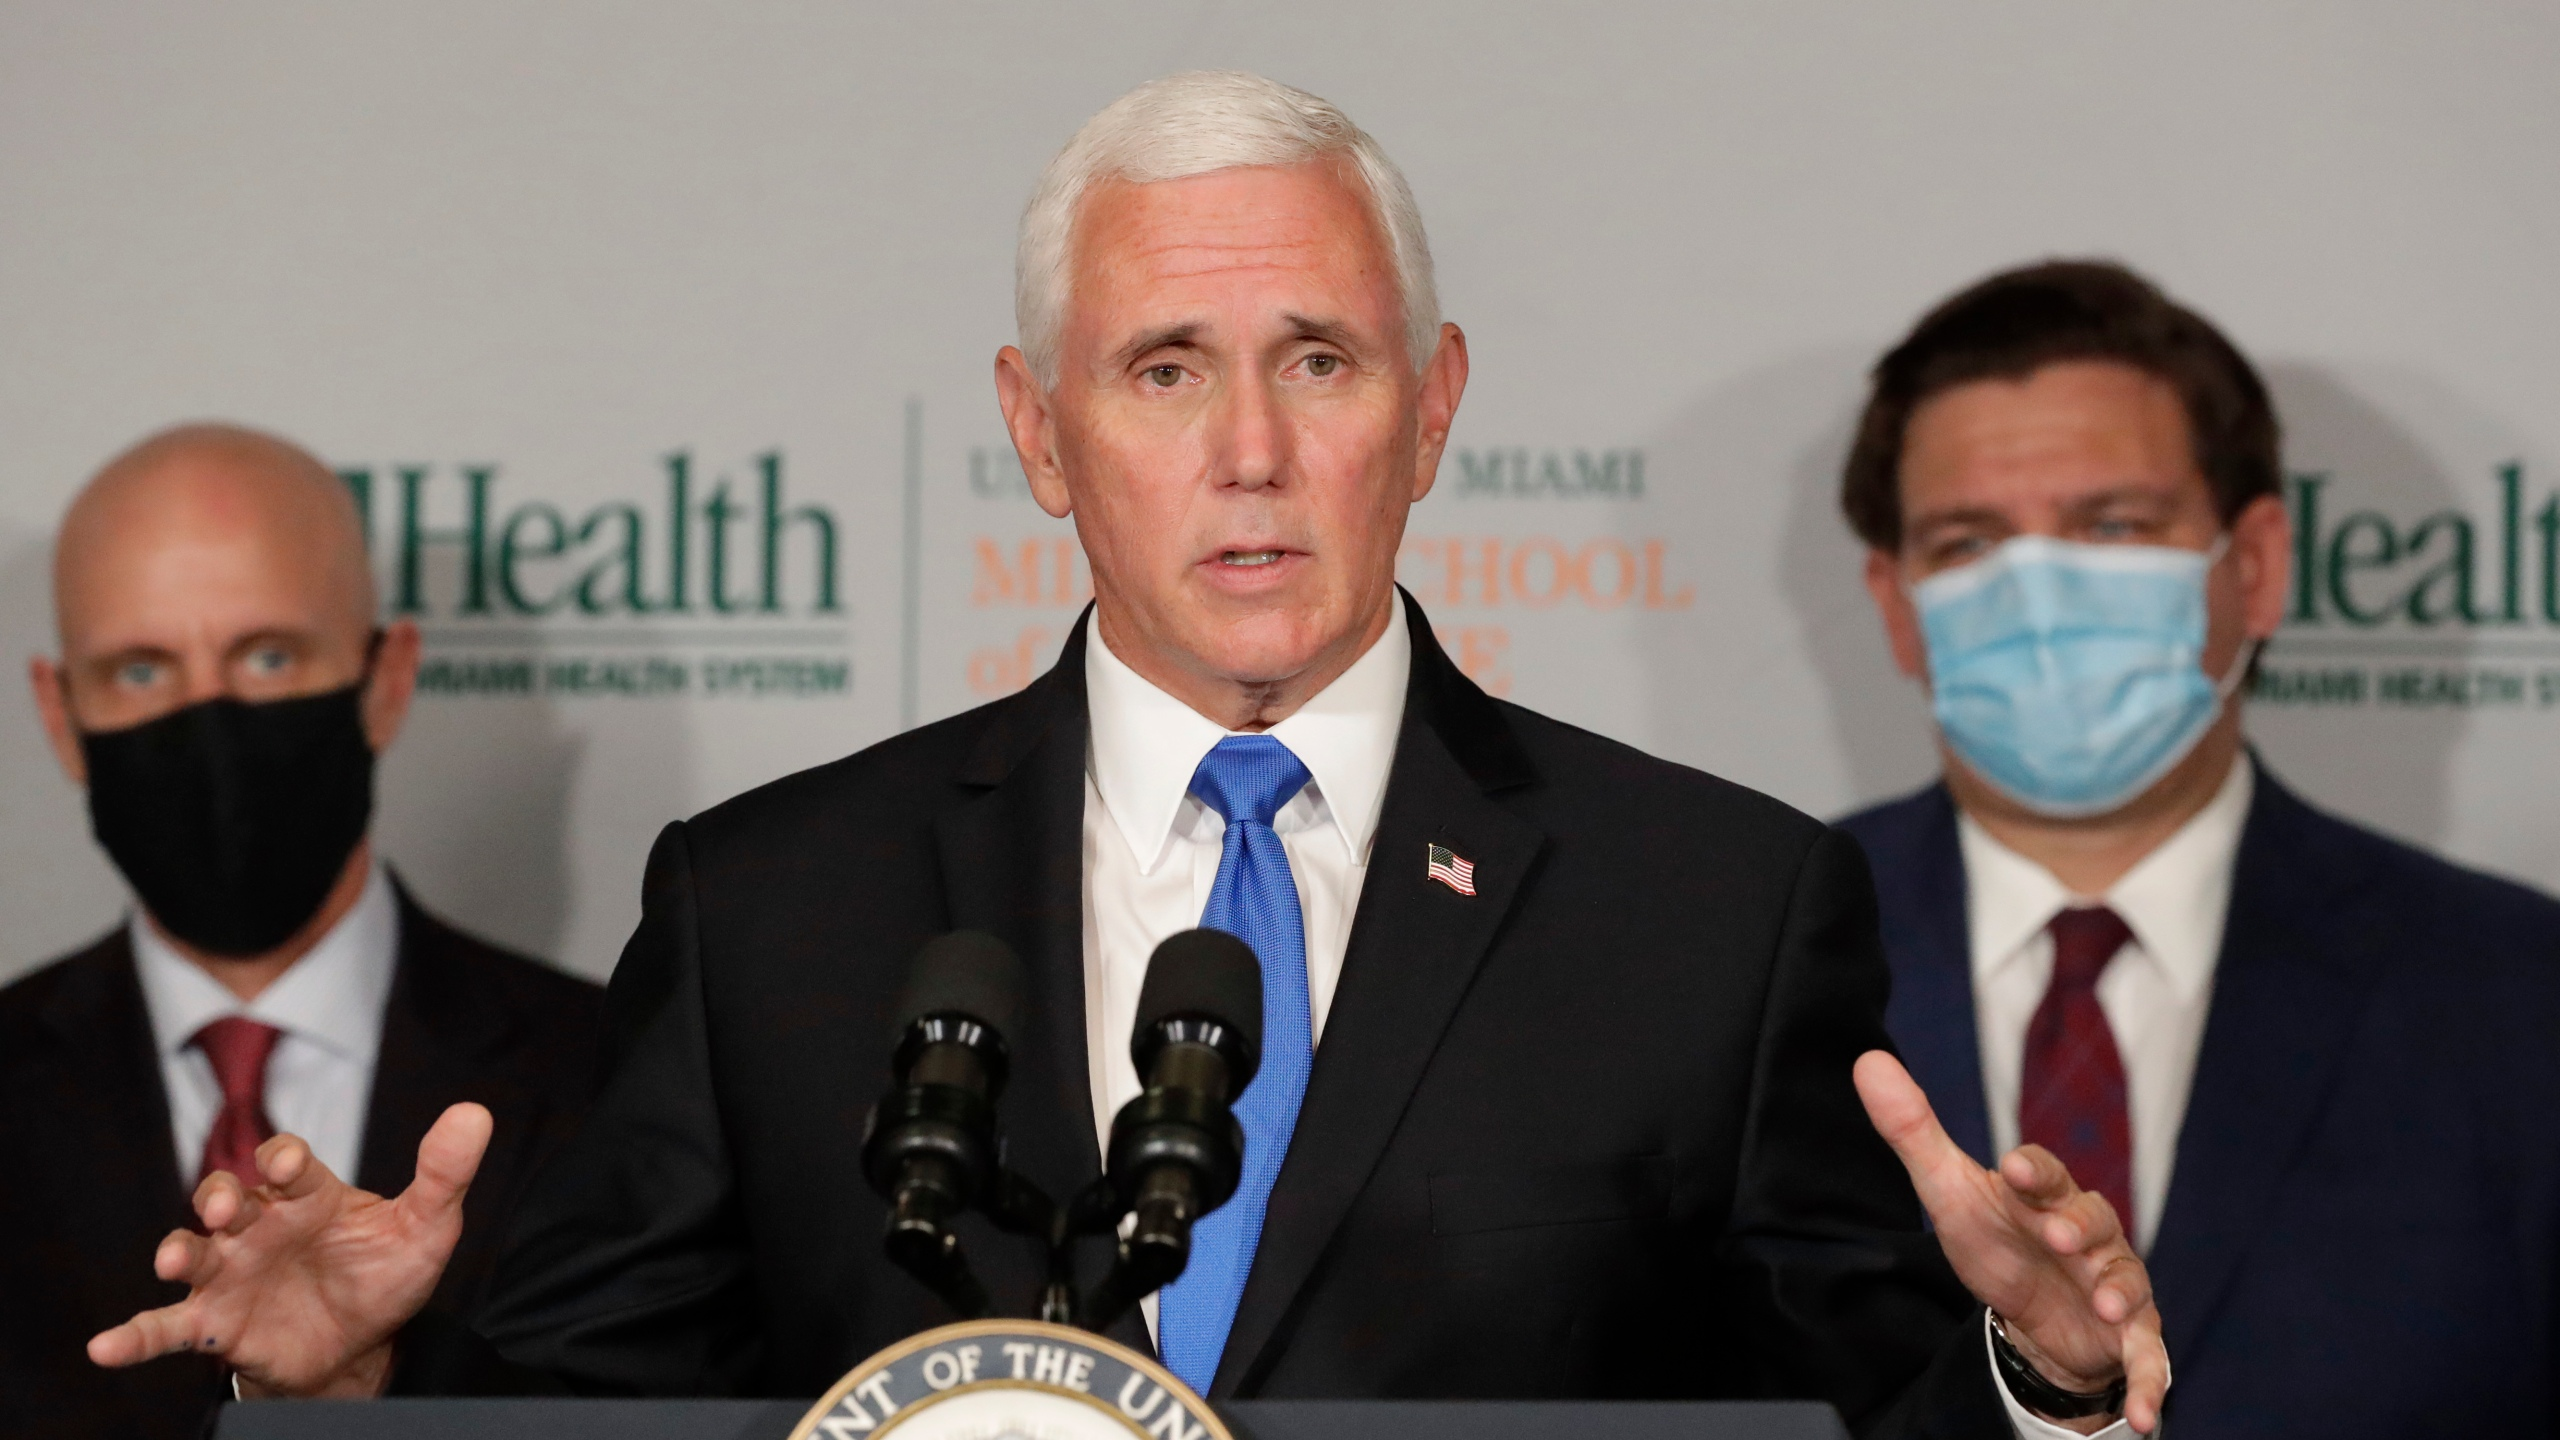 Mike Pence, Ron DeSantis, Stephen Hahn